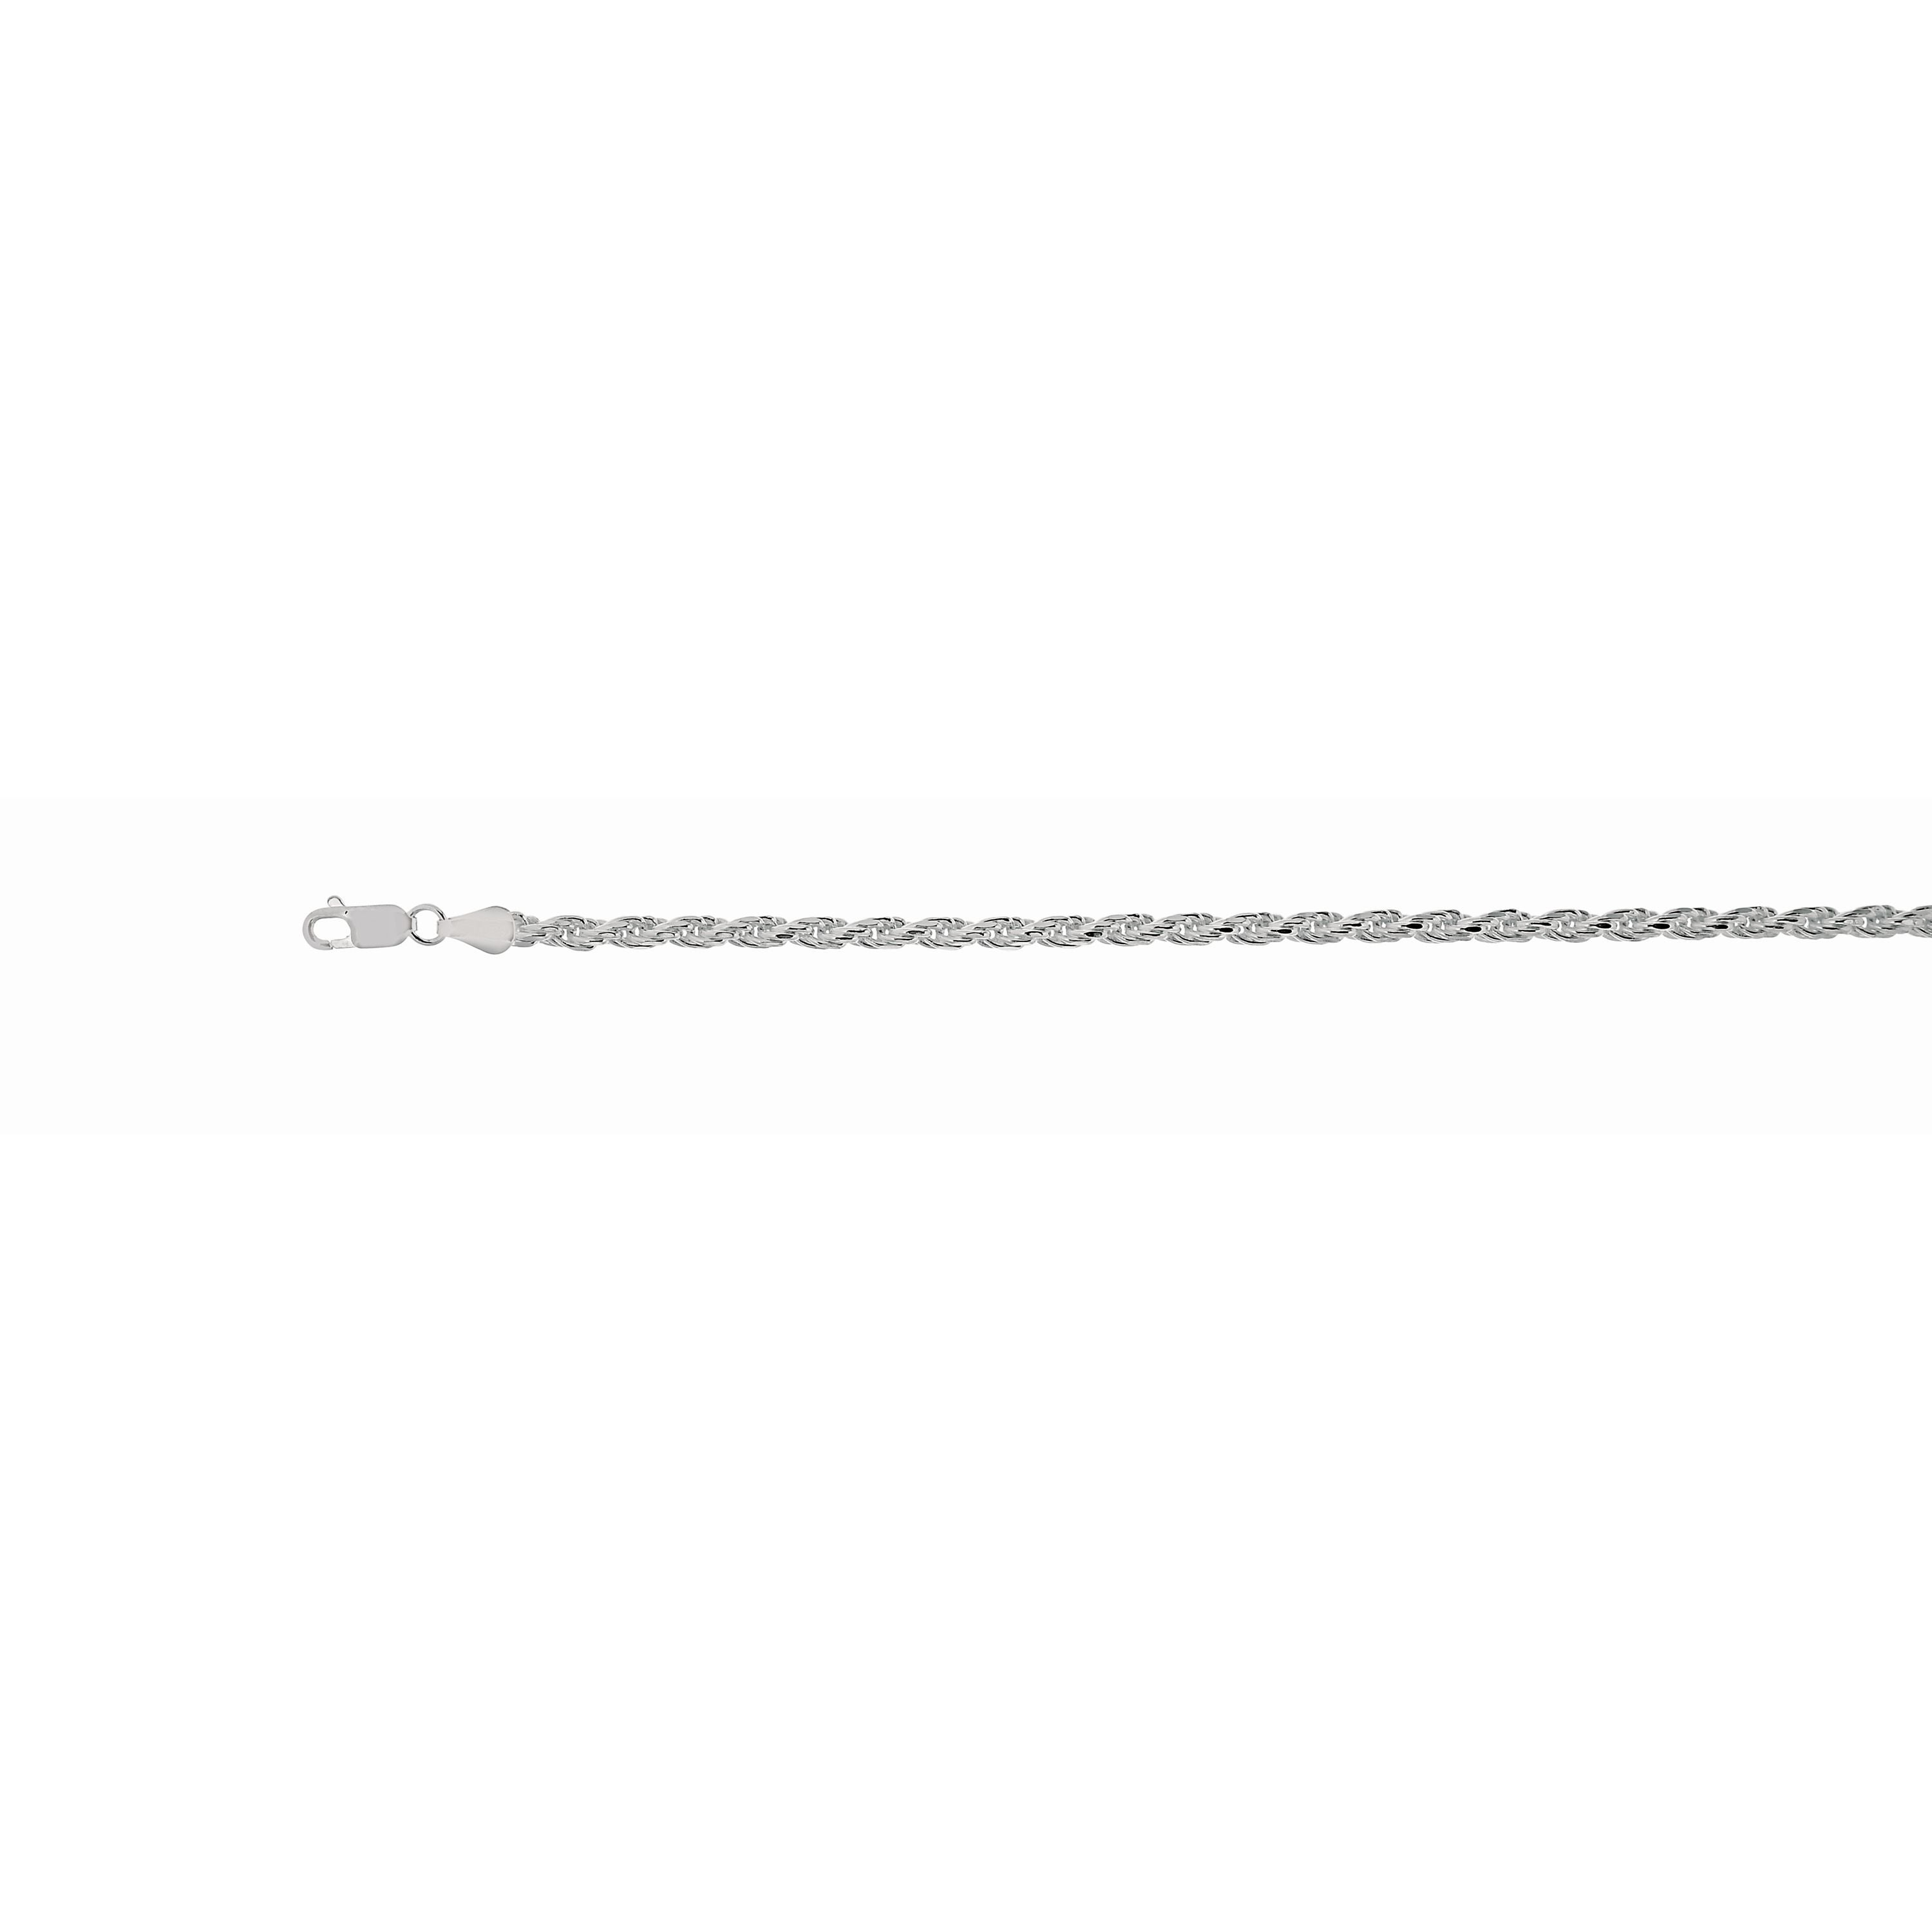 Silver 5mm Rope Chain